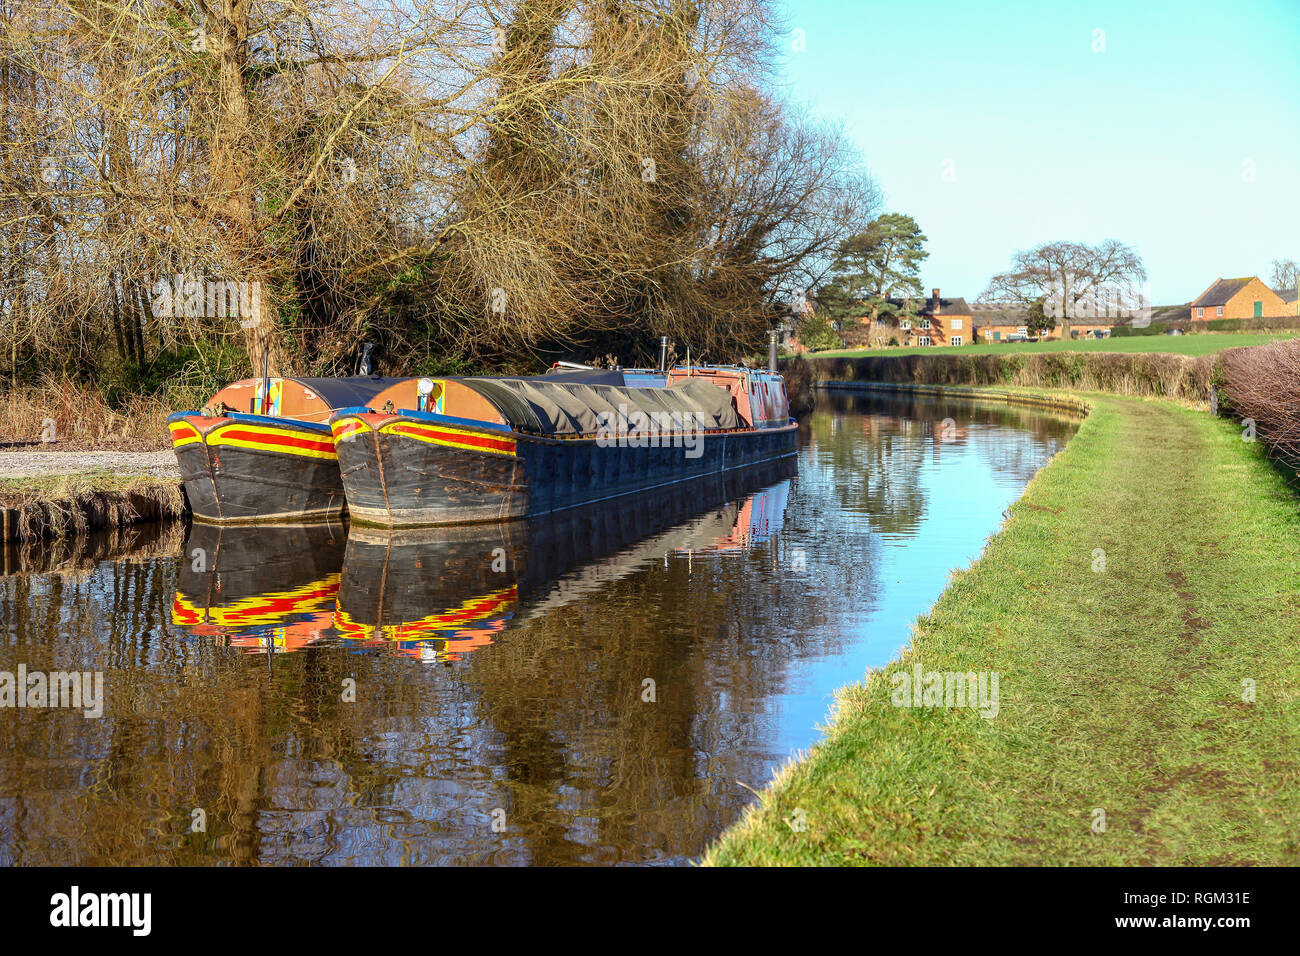 Barges or narrow boats on the Llangollen Canal Cheshire England UK - Stock Image